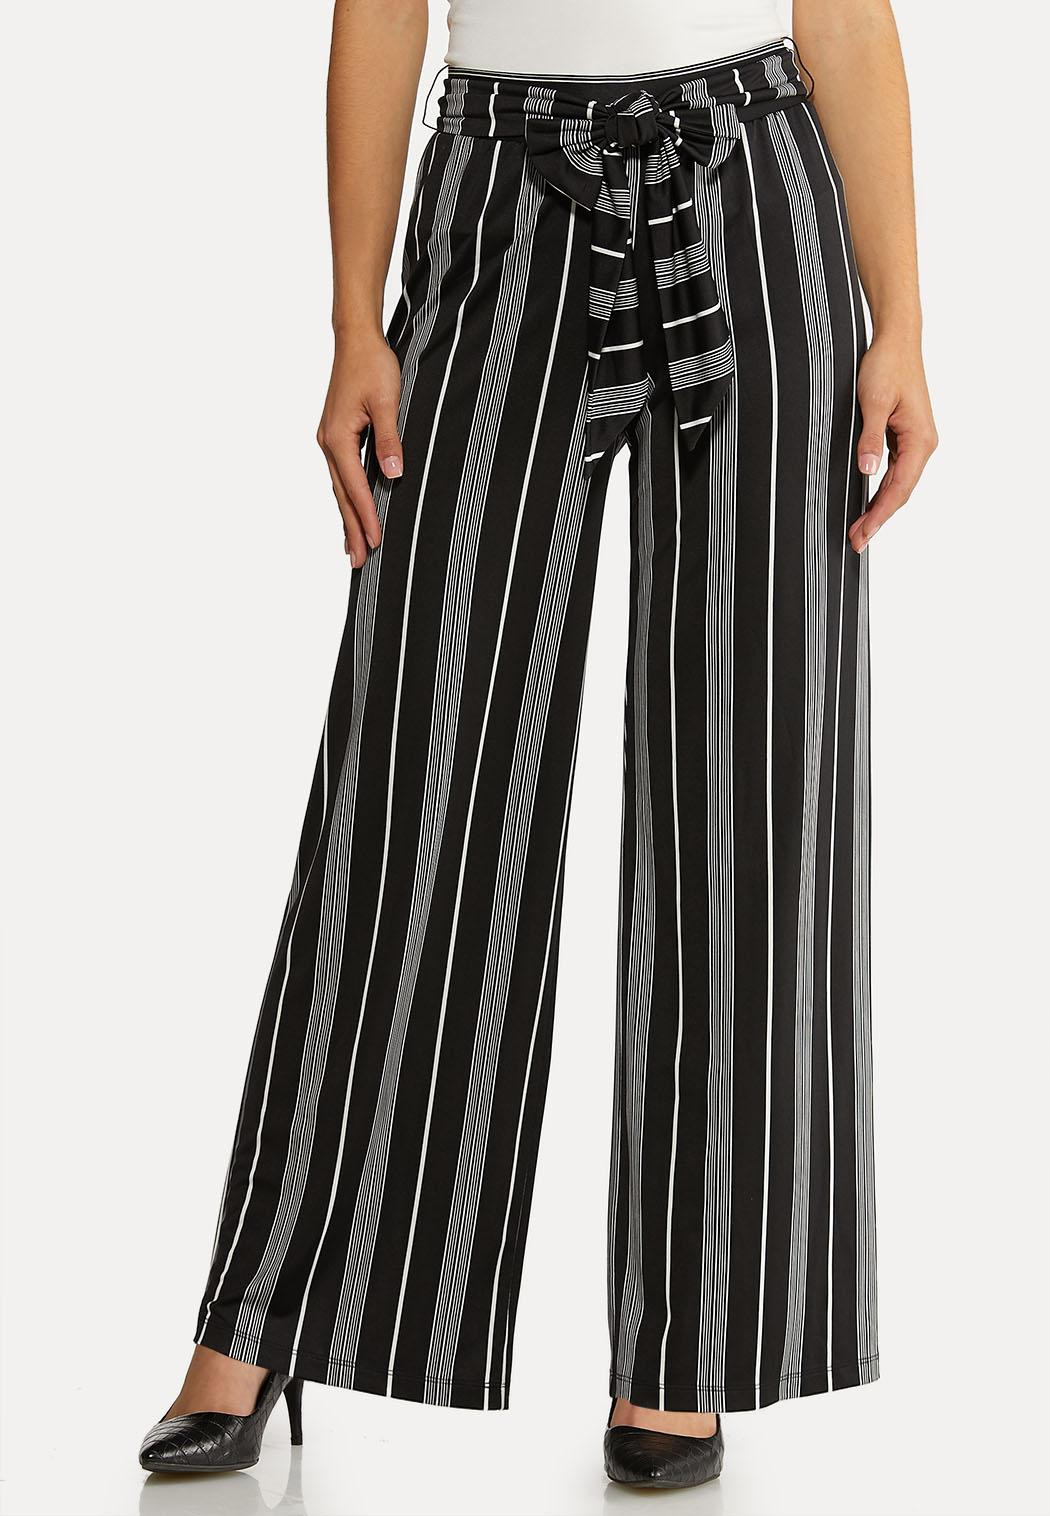 Petite Striped Tie Belted Pants